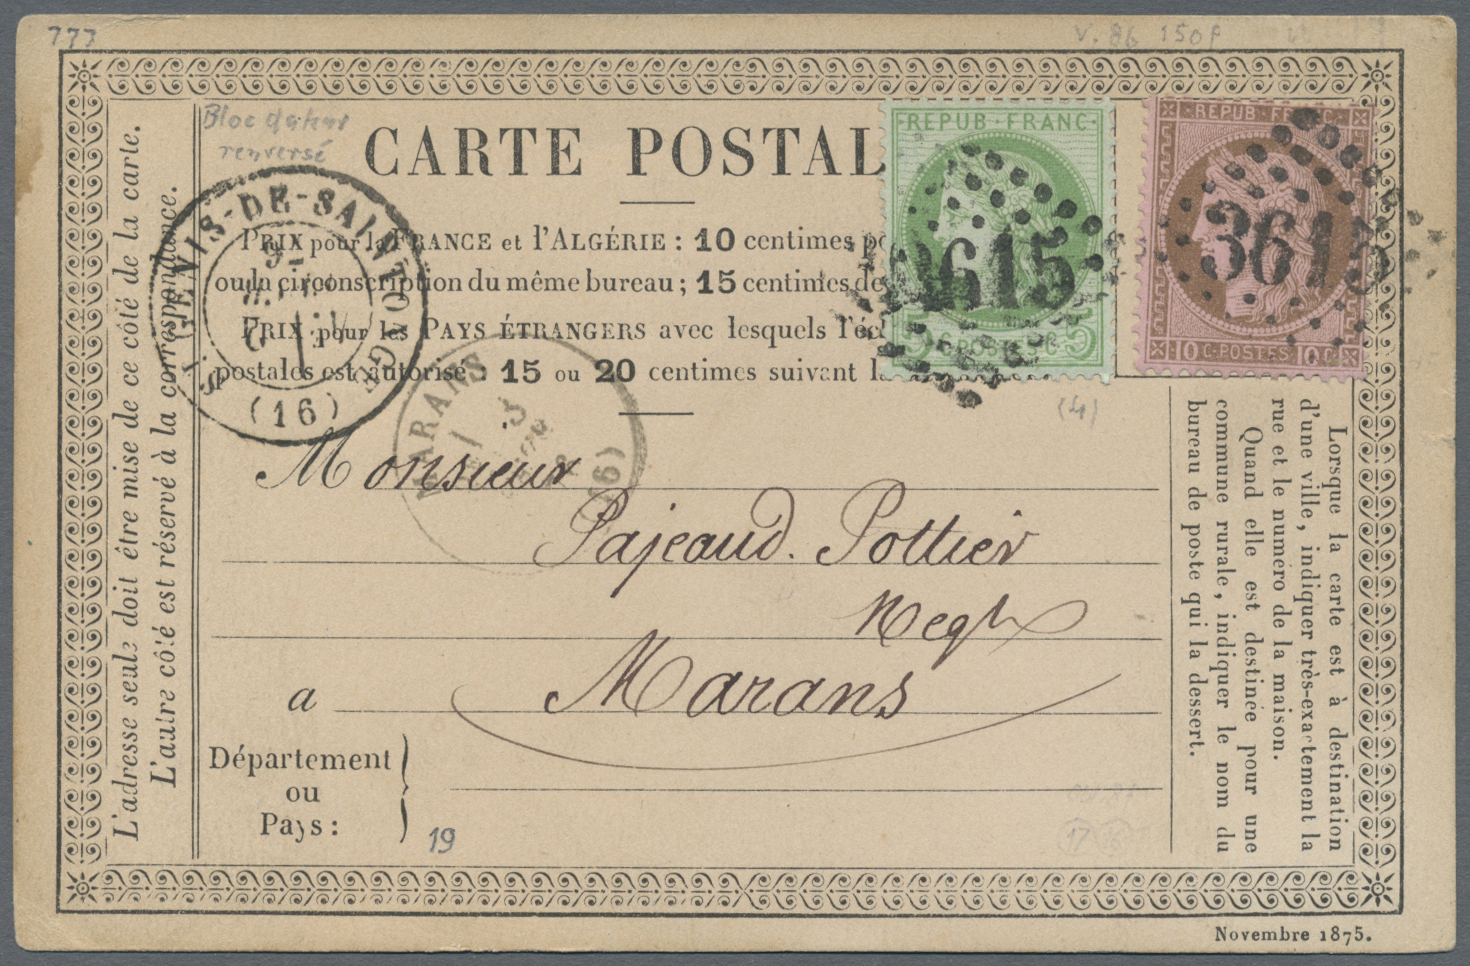 Stamp Auction - Frankreich - Sale #43 Asia, Collections intérieur Carte Numero Departement